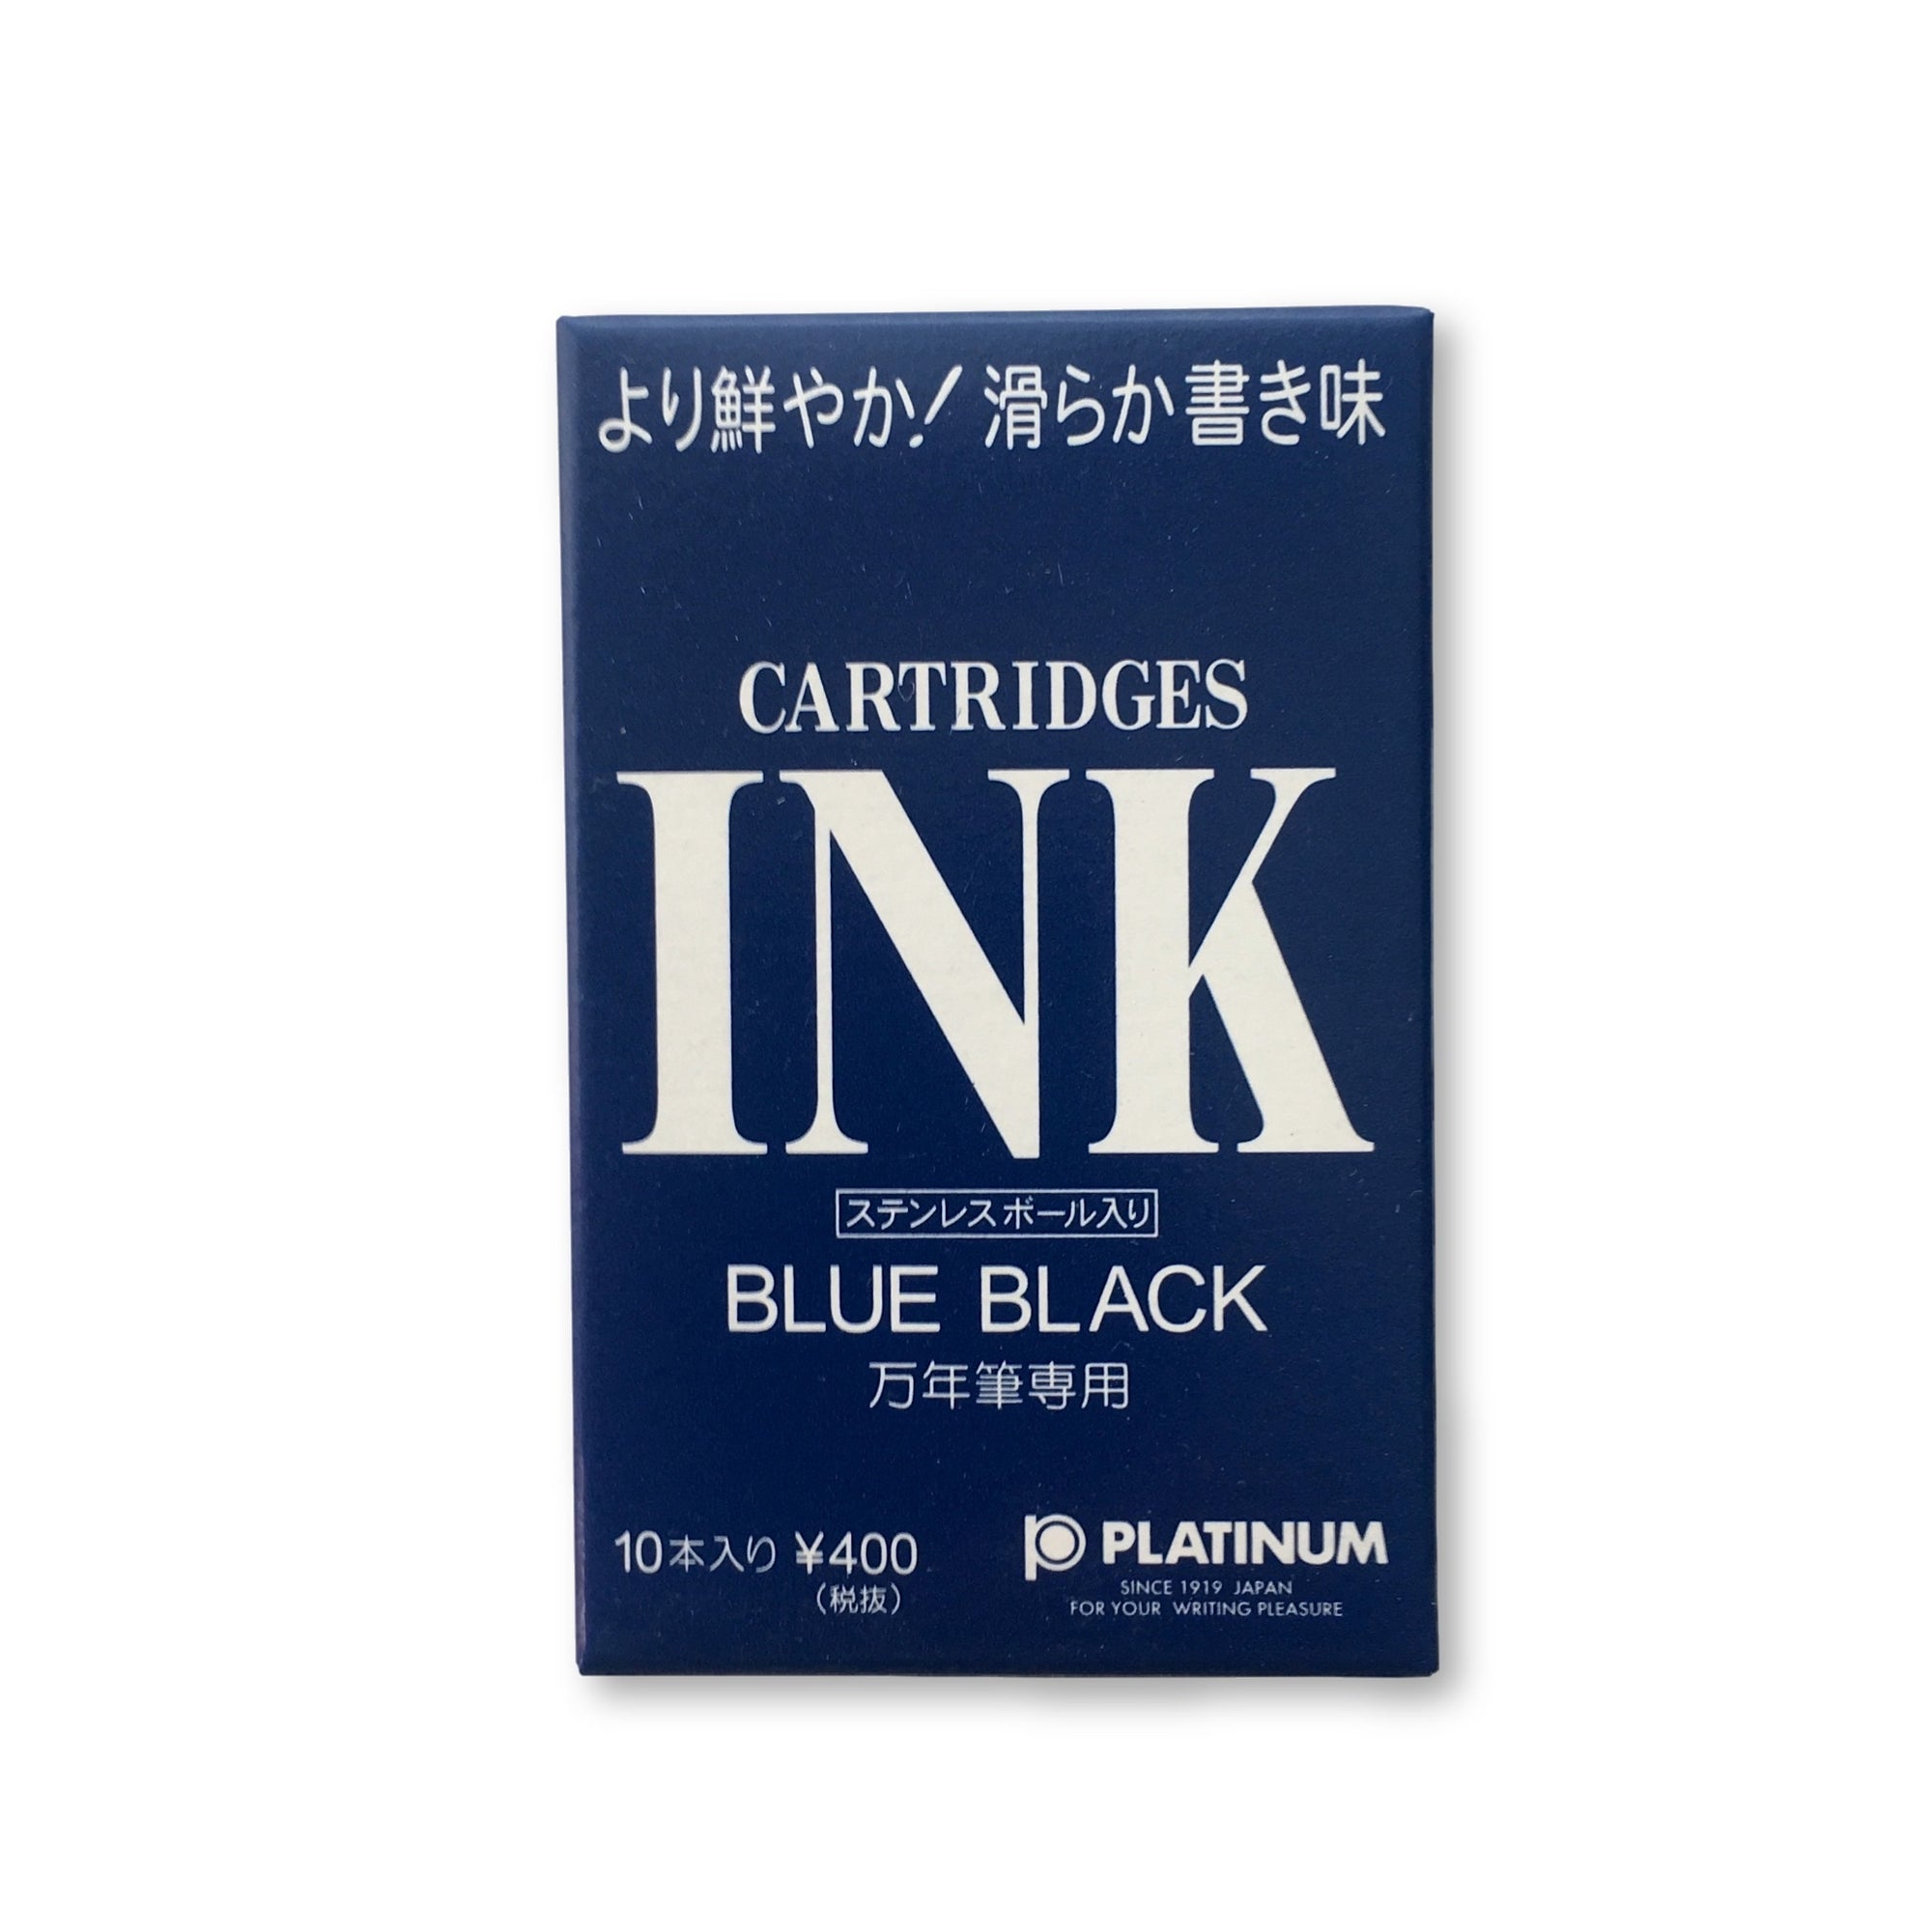 Platinum Dye Stuff Ink Cartridges (Blue Black) - NOMADO Store